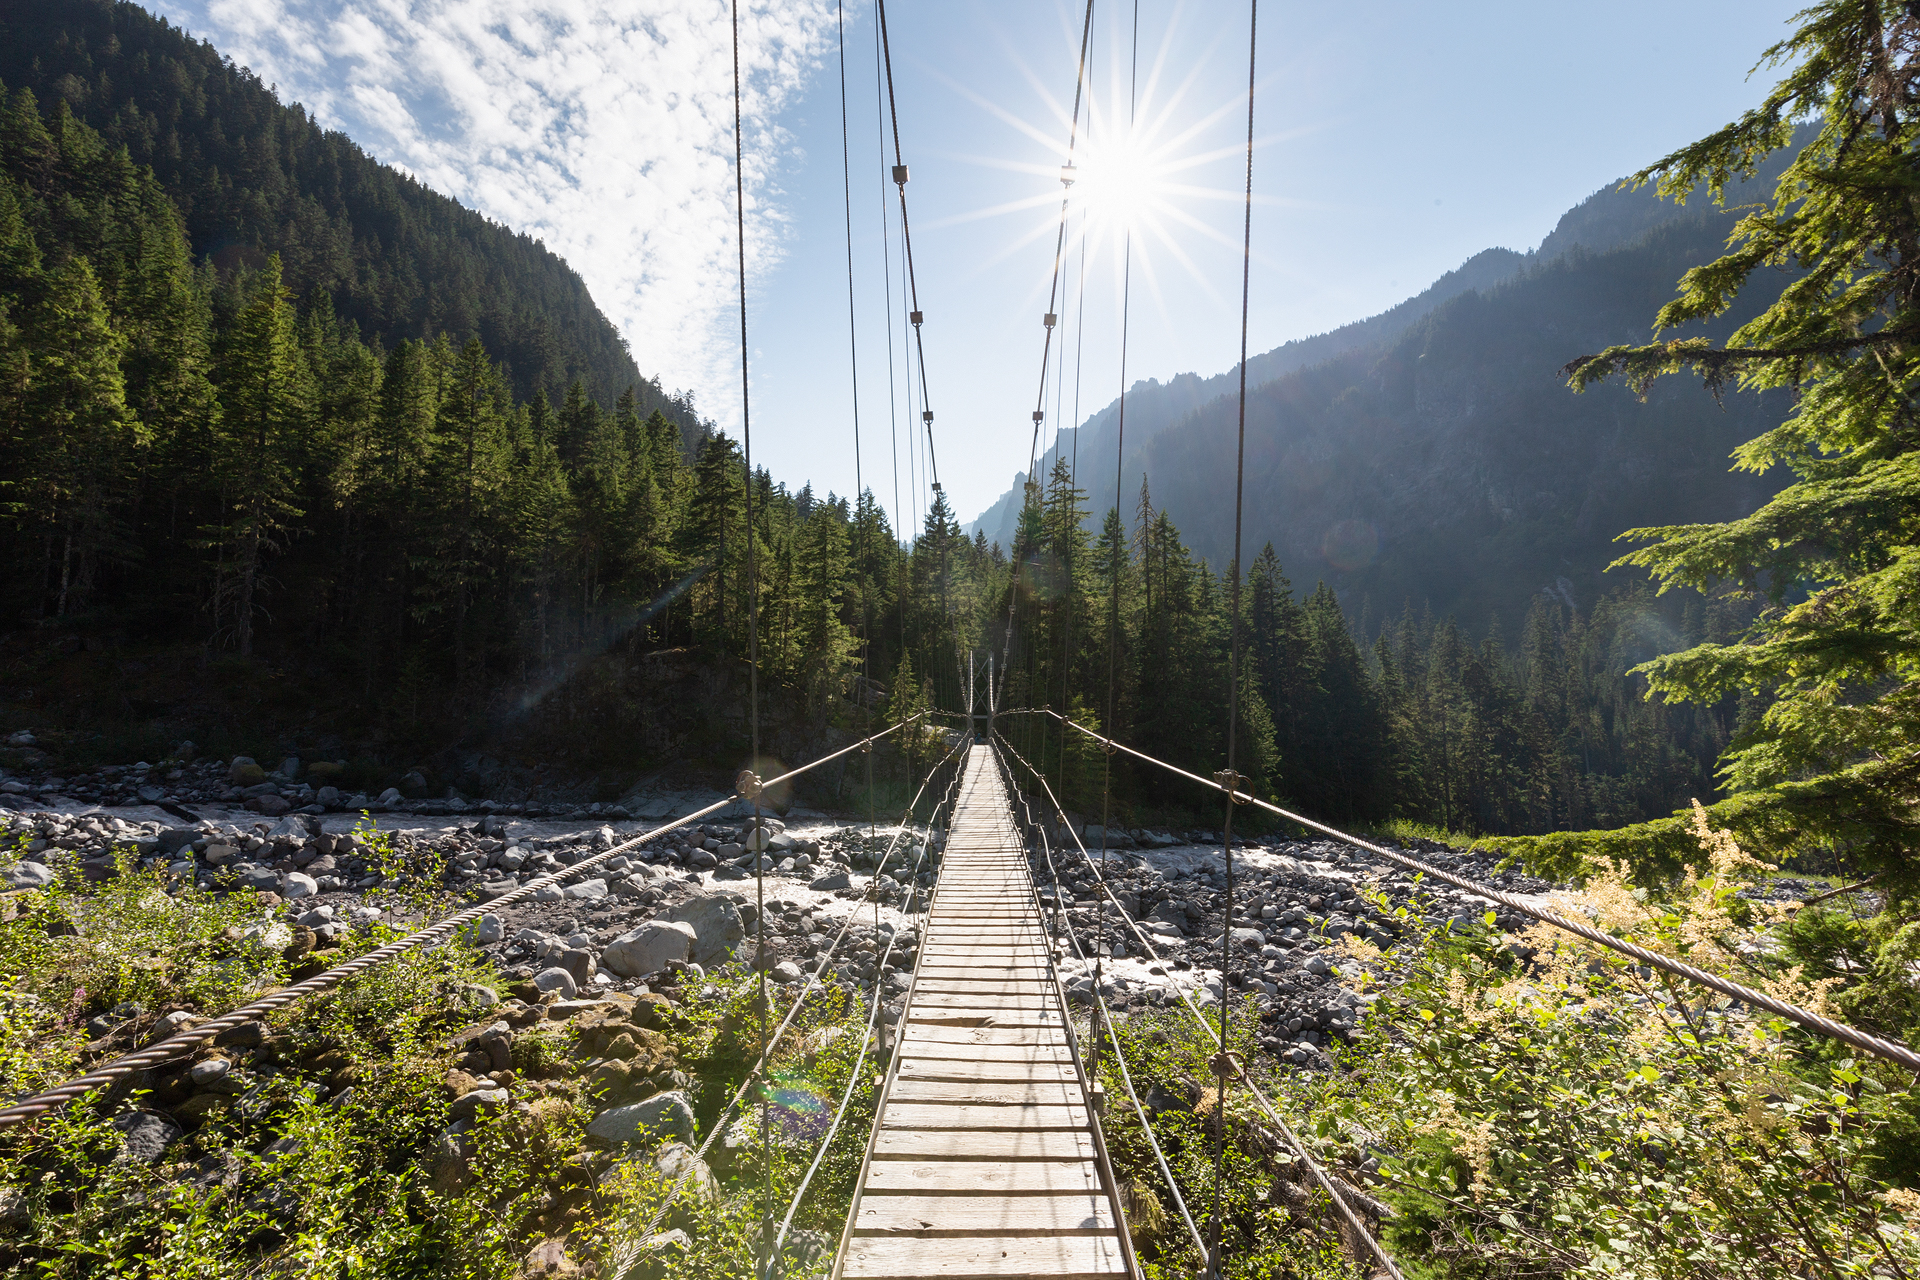 The Carbon River Suspension Bridge